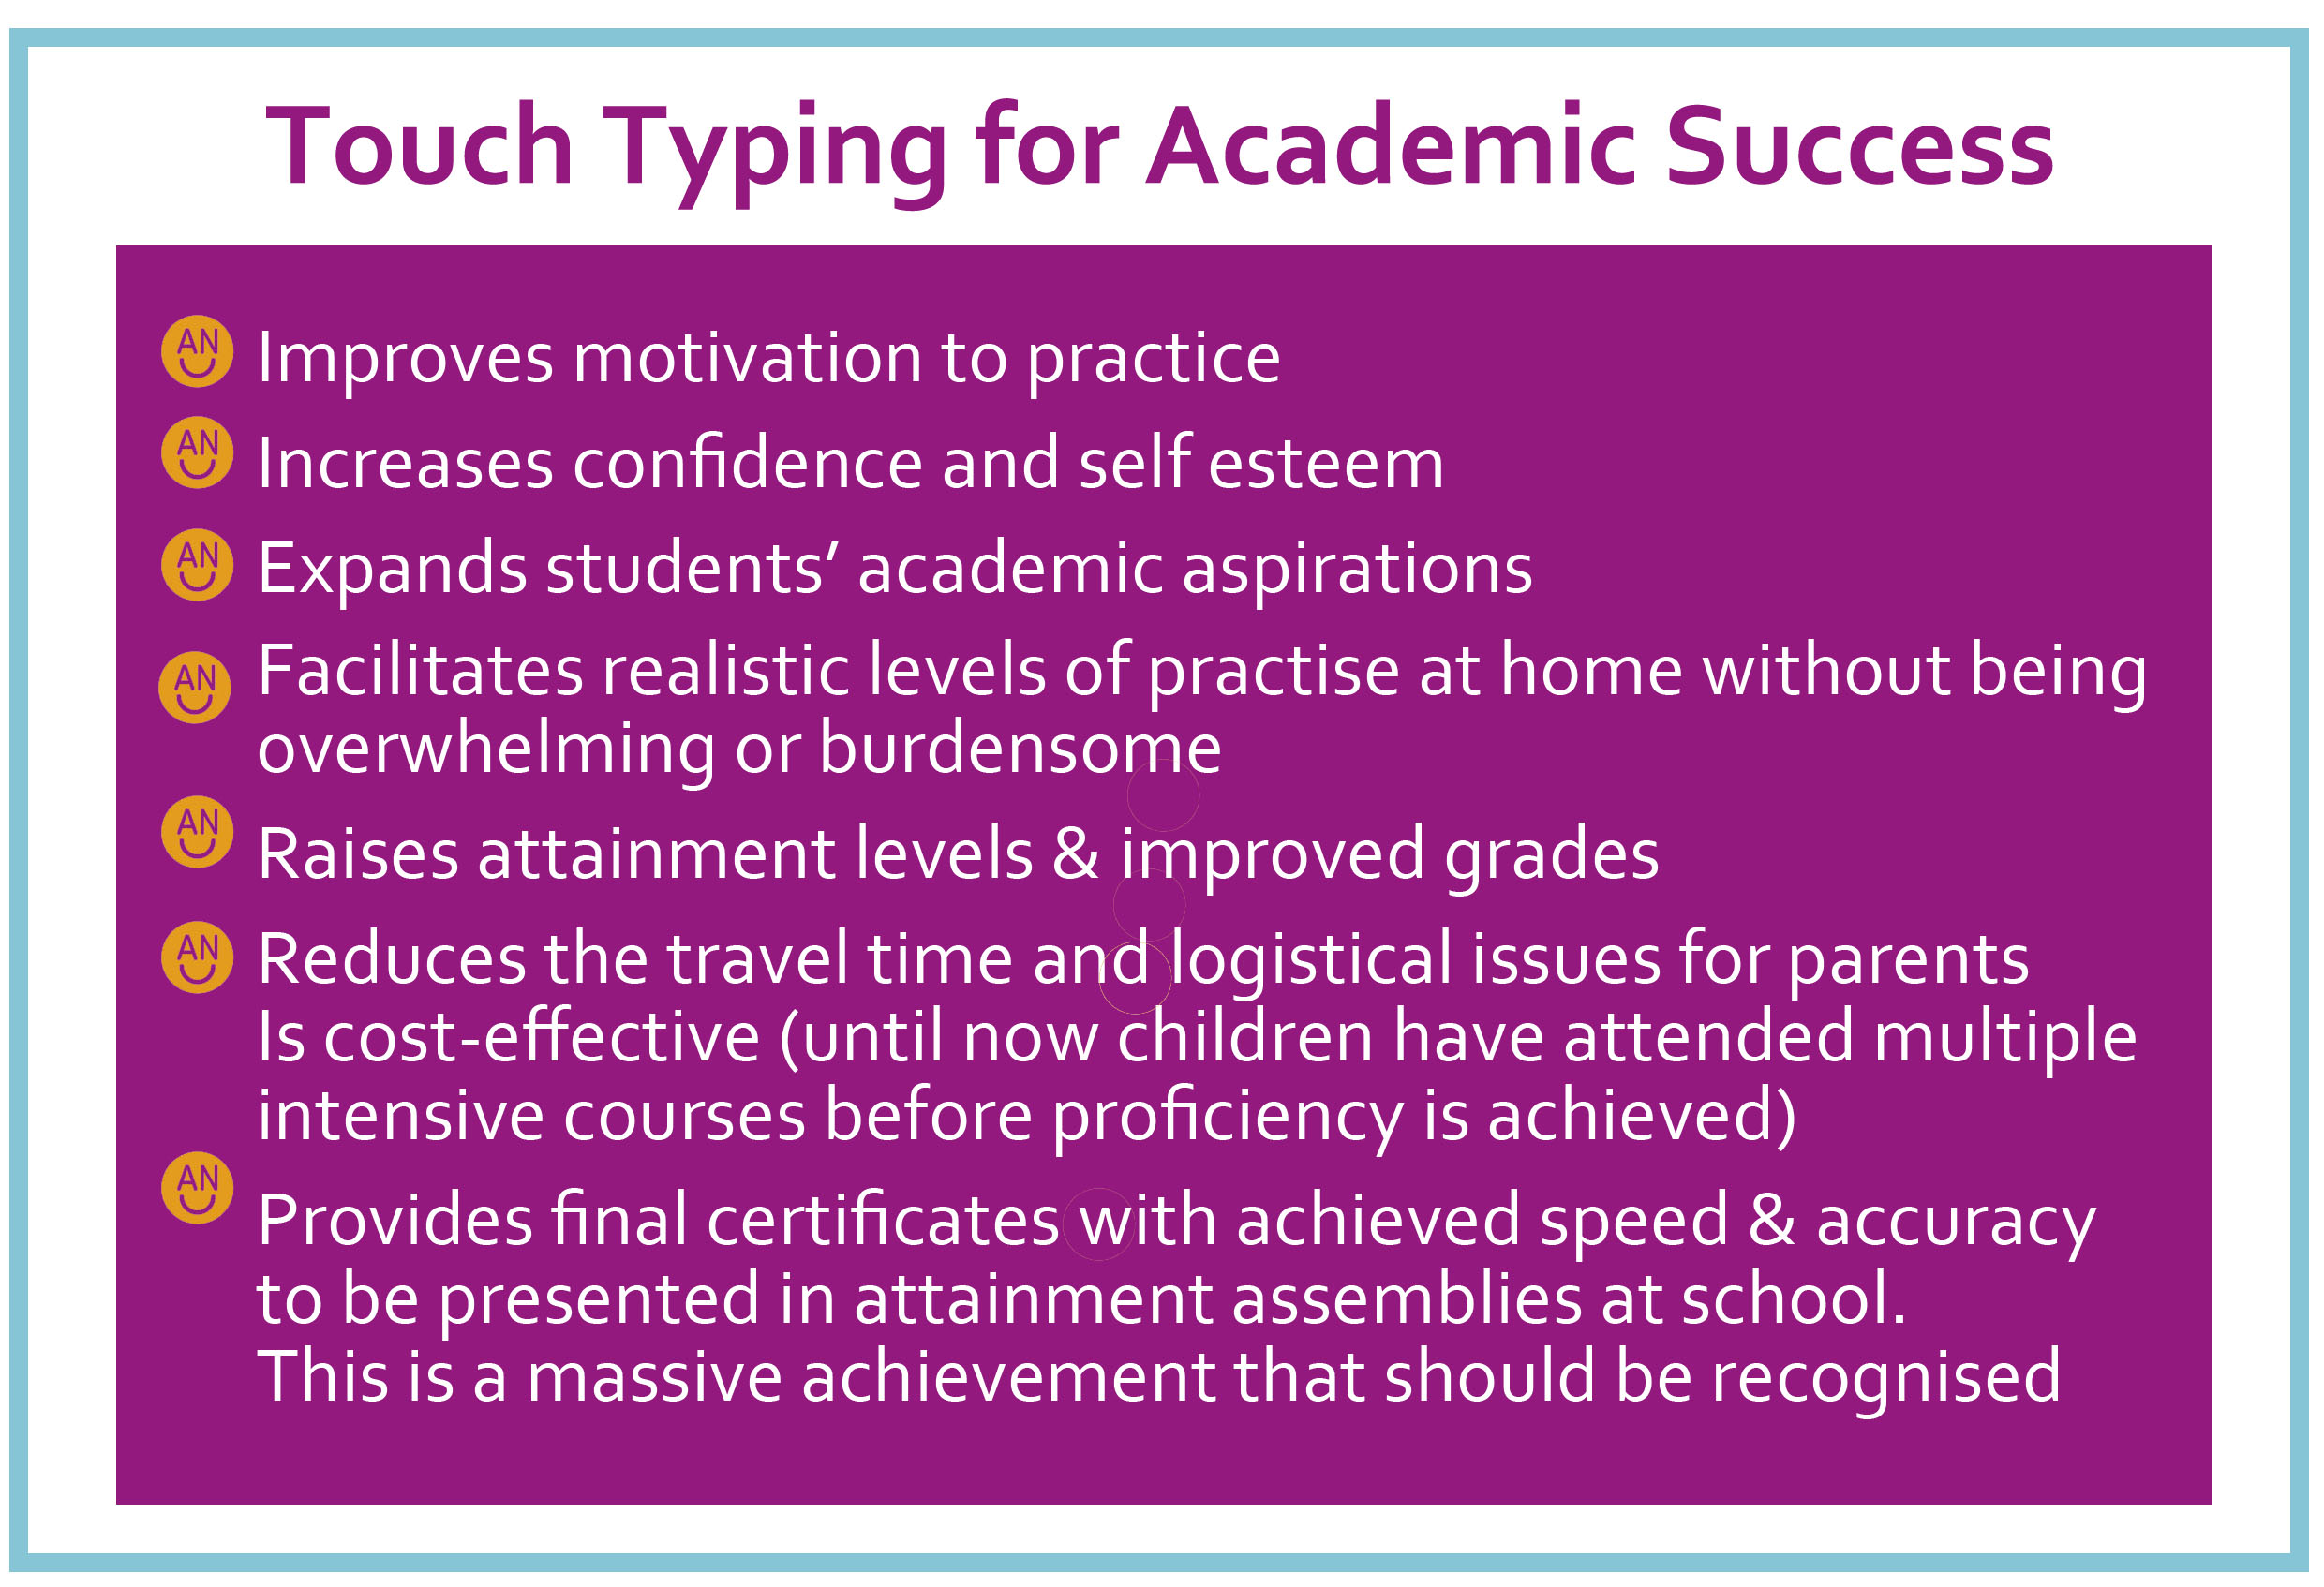 Touch typing course key points.jpg